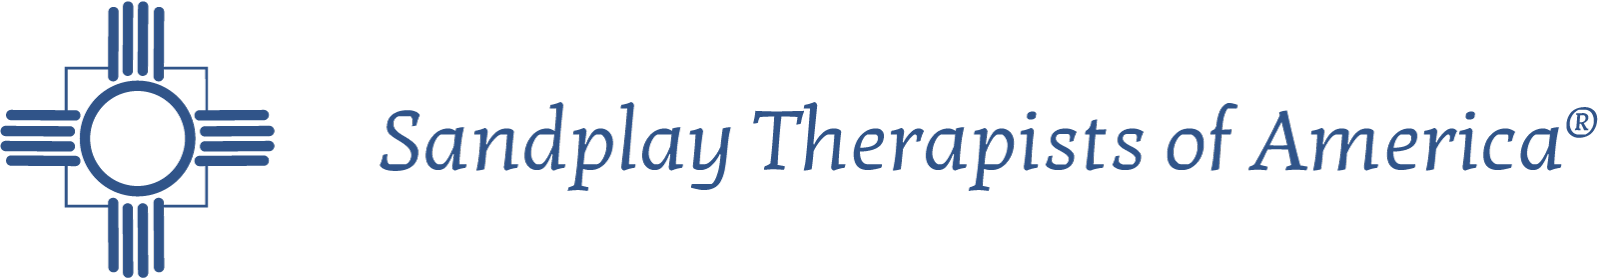 Sandplay Therapists of America Retina Logo